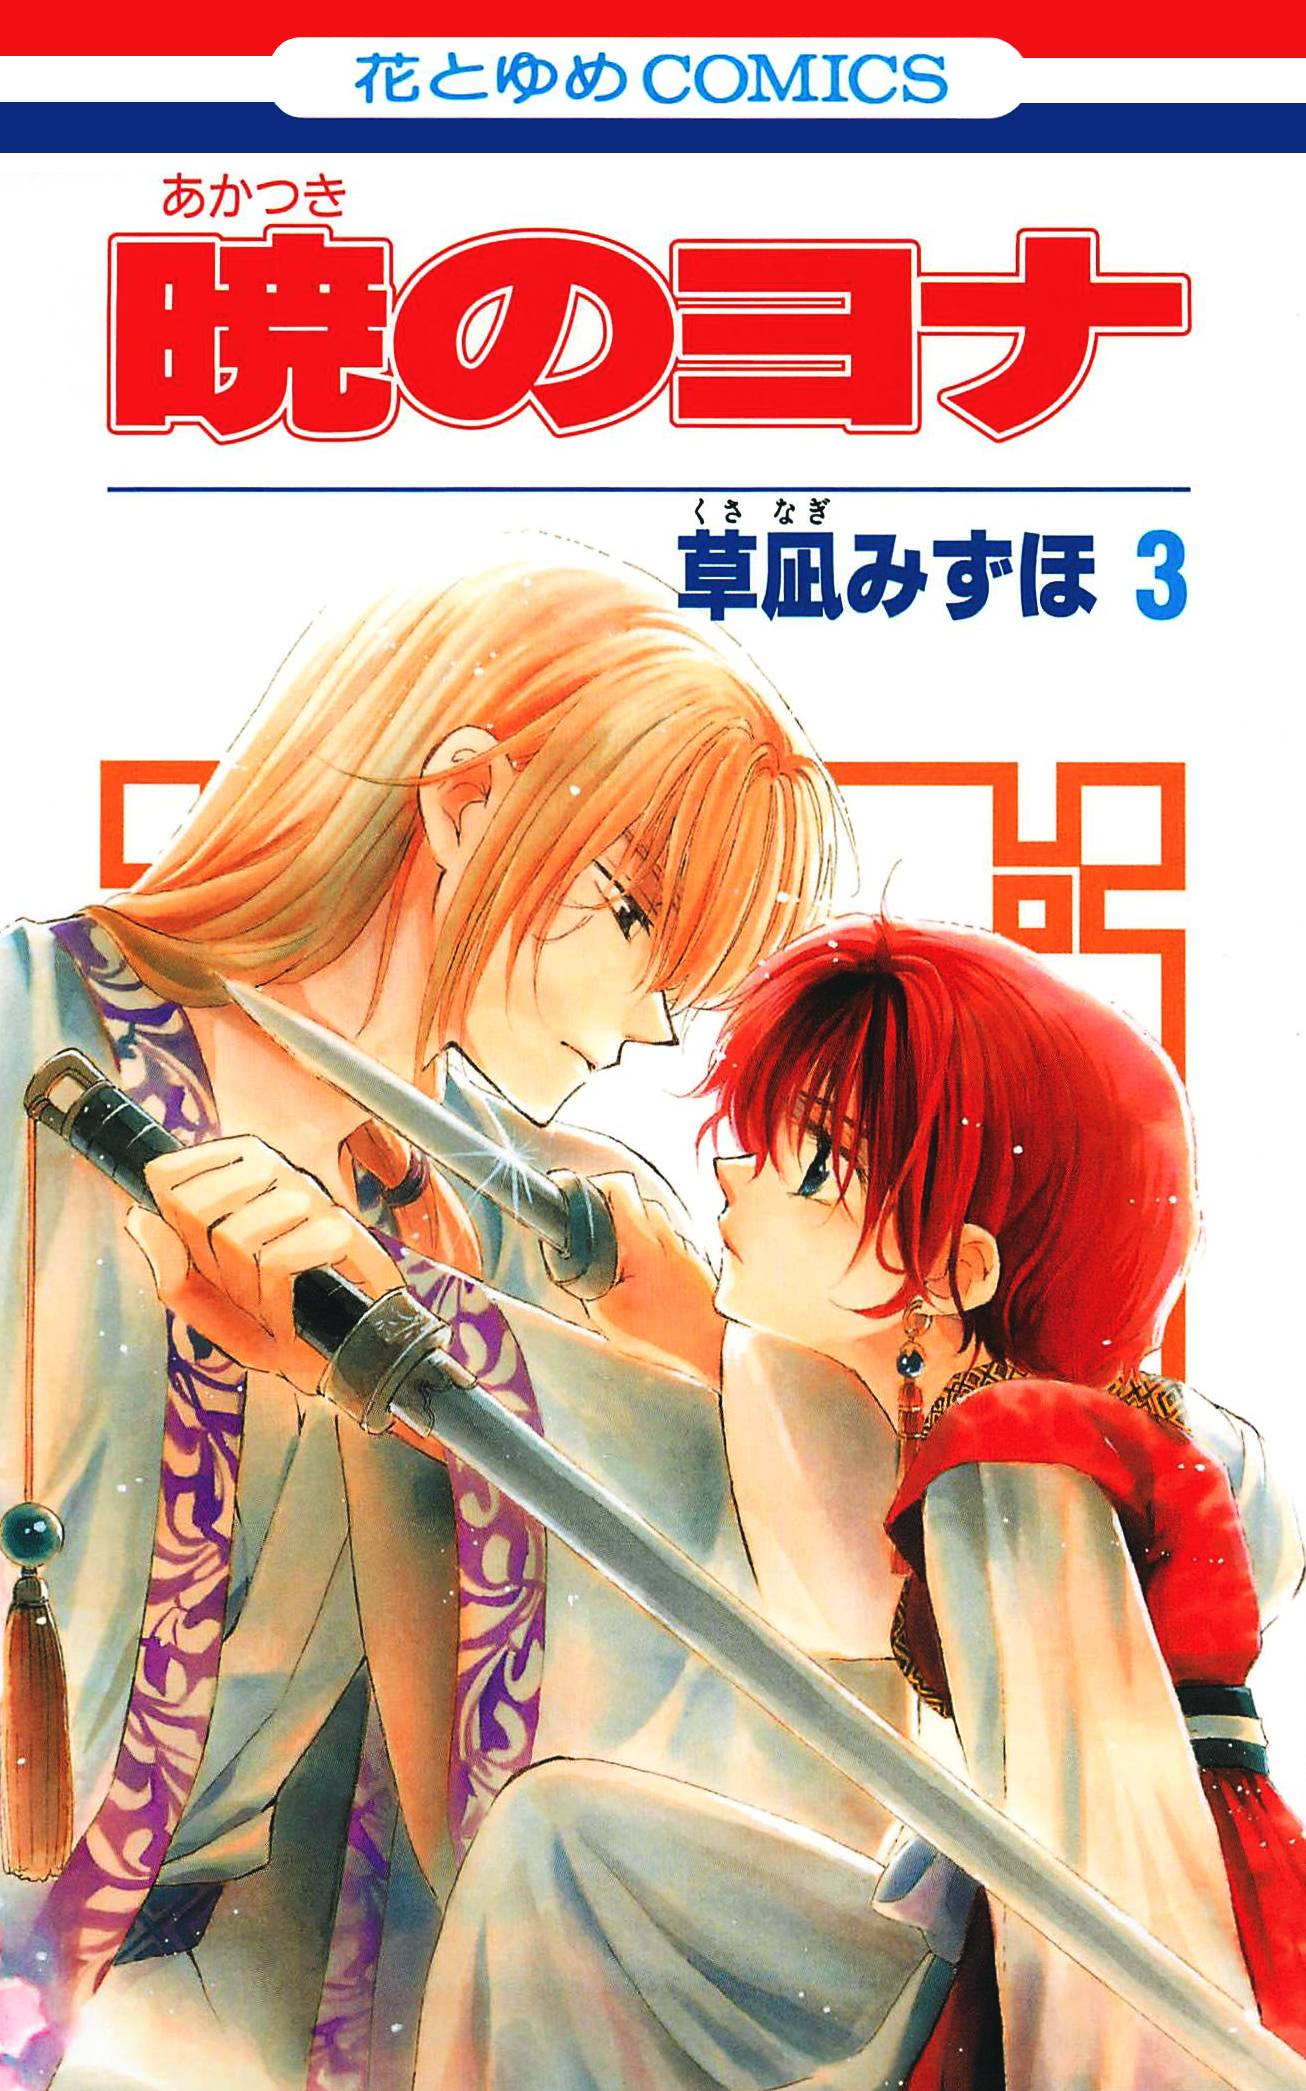 Image result for yona of the dawn manga cover